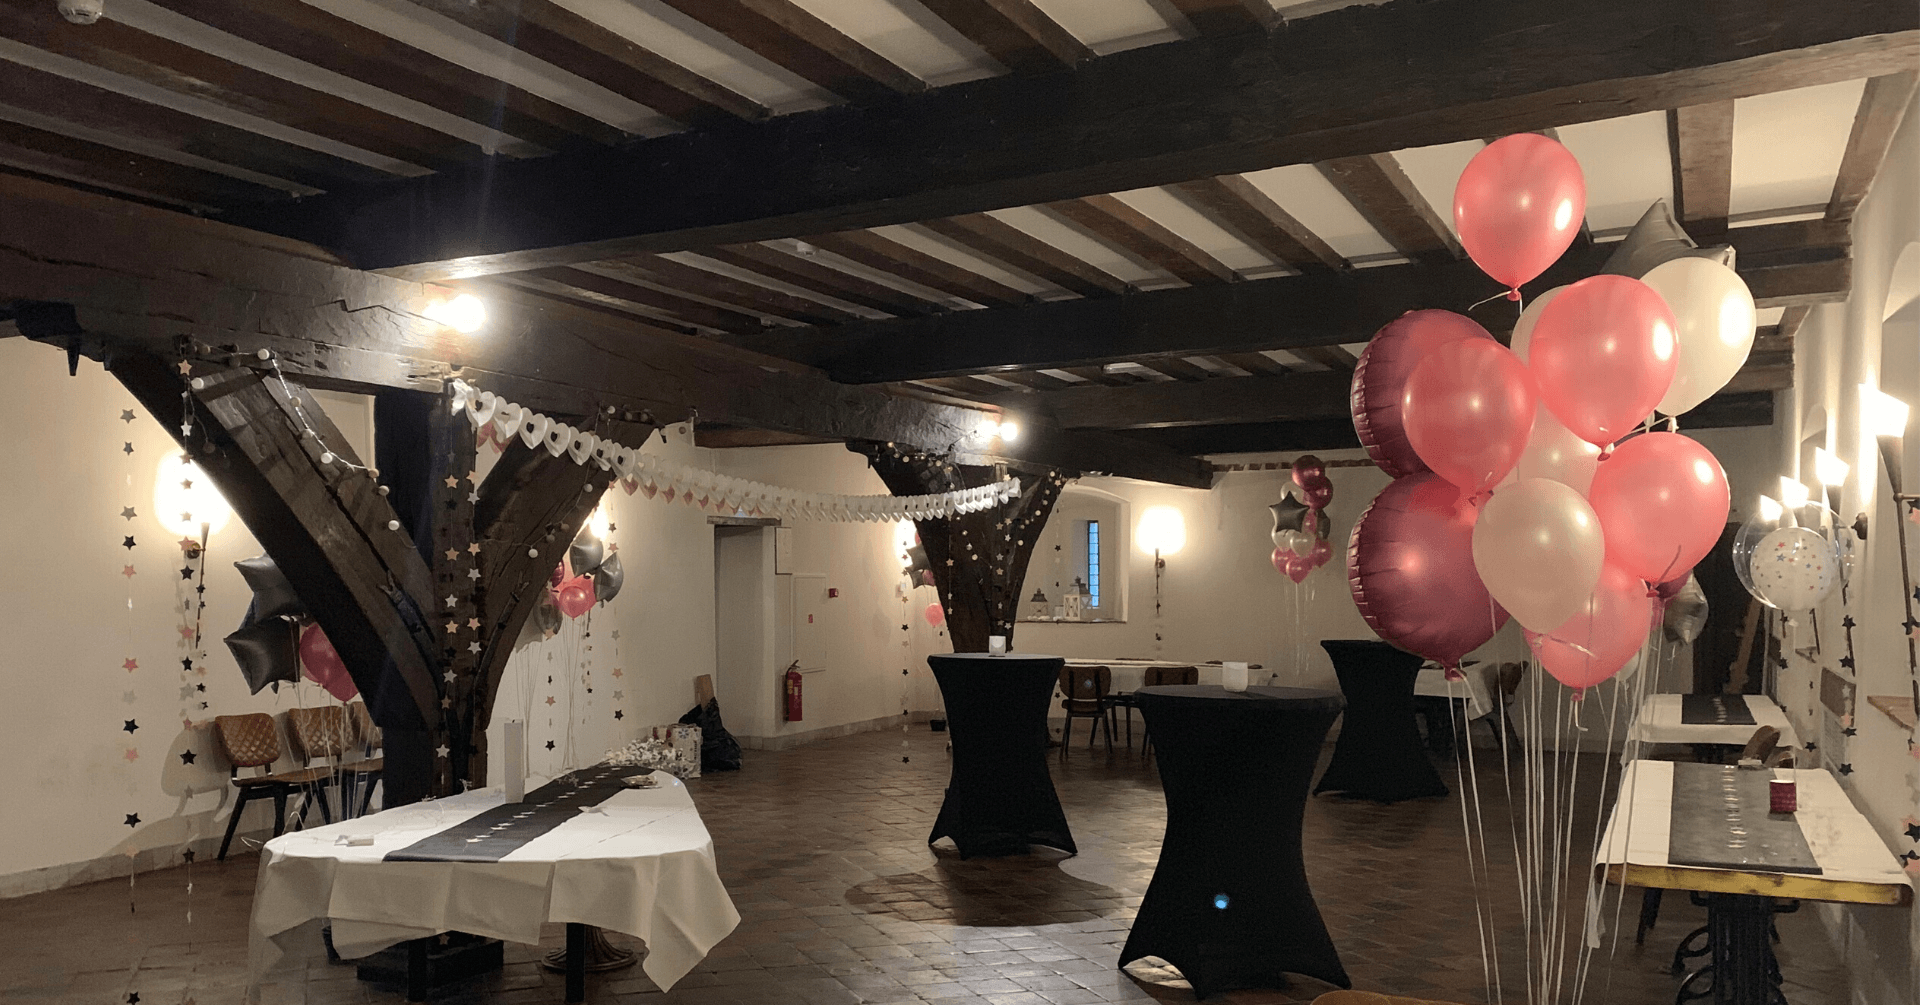 Radboud Castle-Baby shower decorations in the Grand Tavern